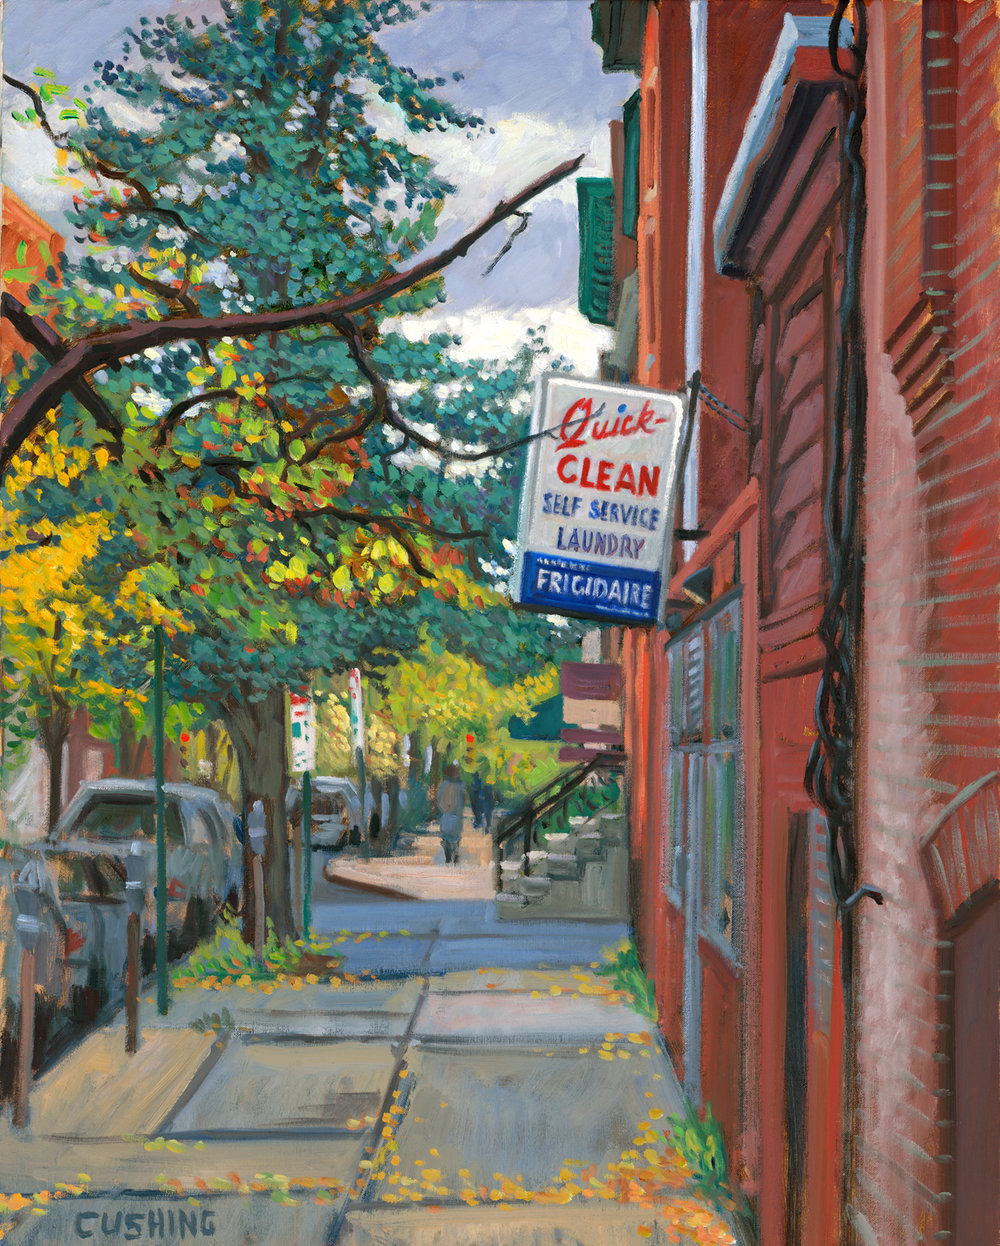 """Quick-Clean, 10th and Spruce Streets, Philadelphia""  30 x 24""  $3,000.00"